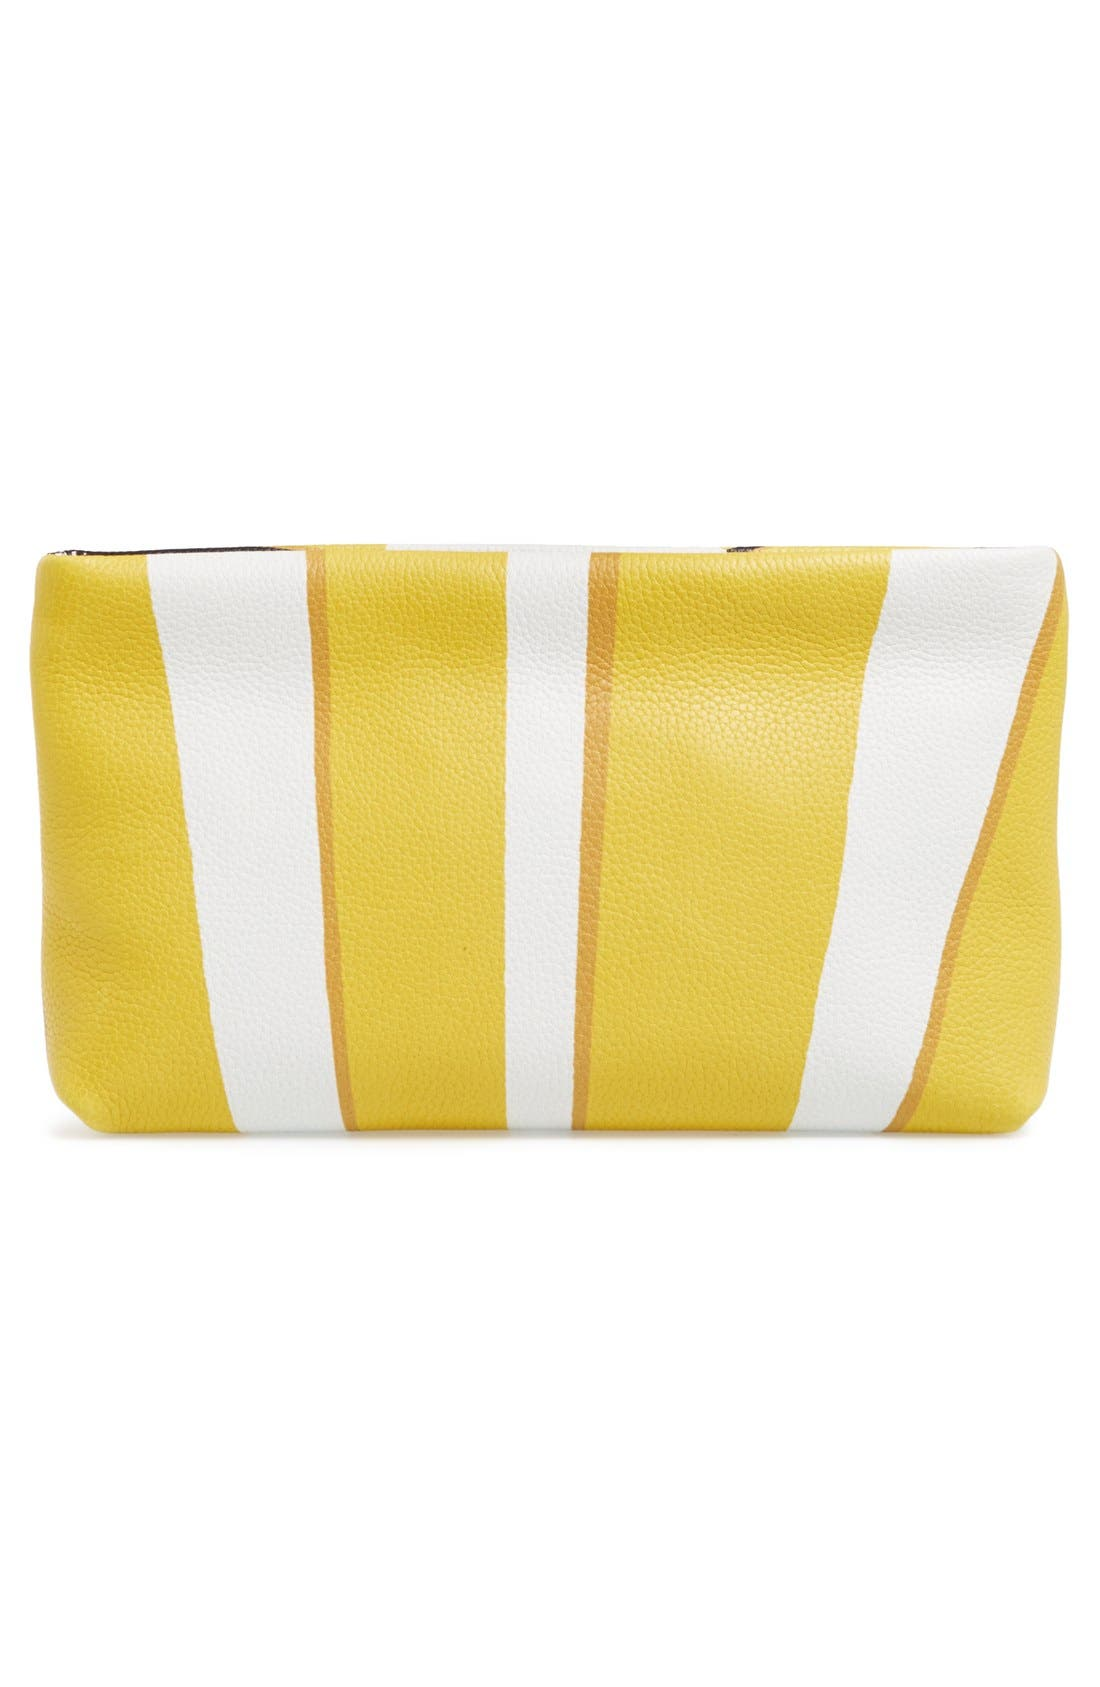 Alternate Image 3  - Burberry Leather Clutch